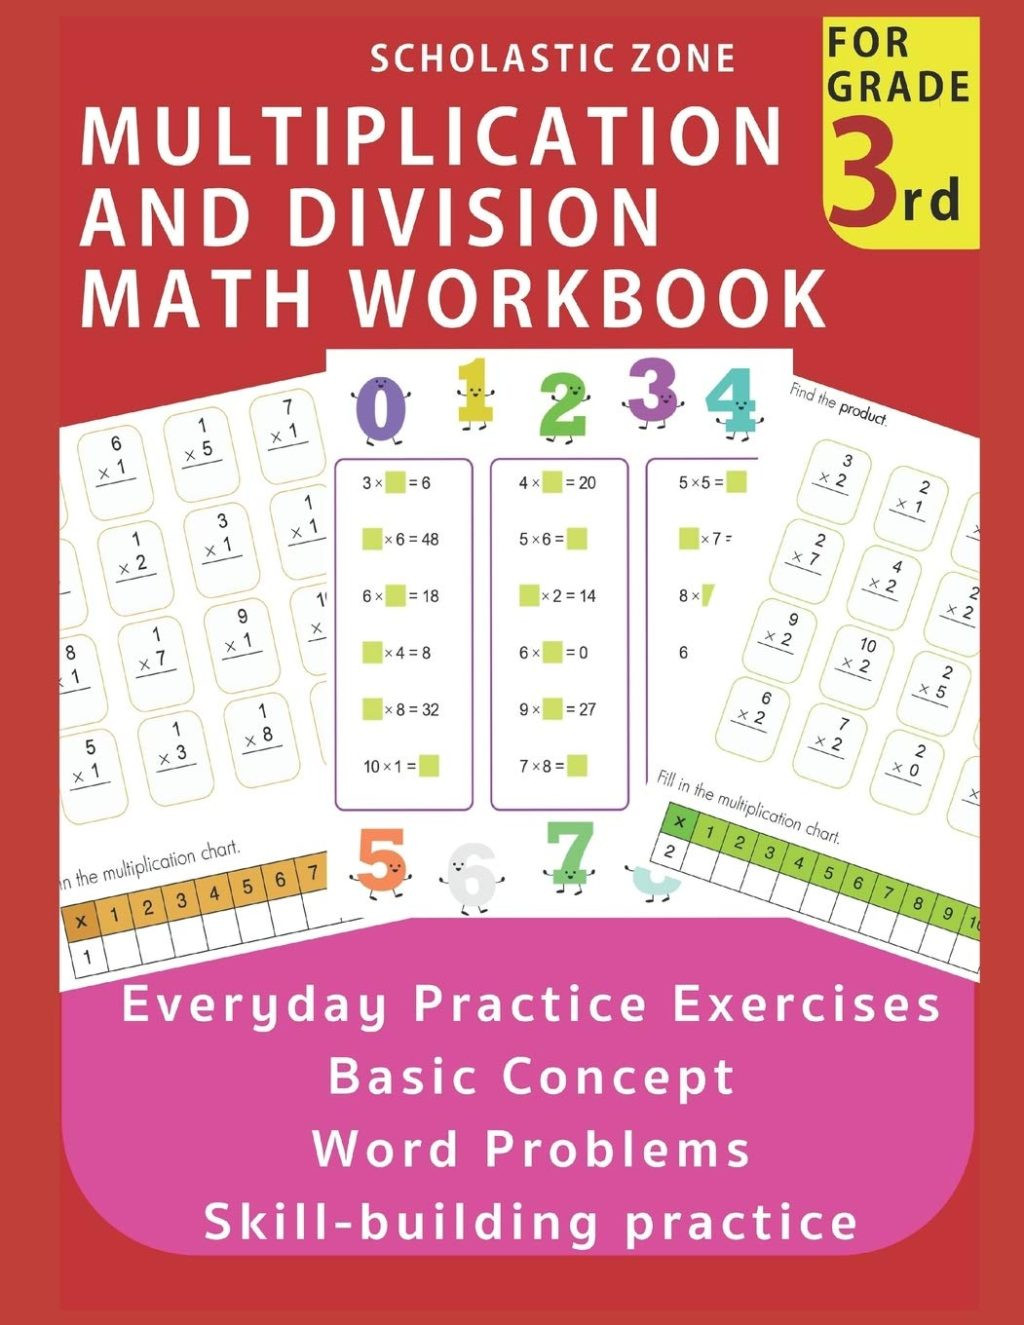 6th Grade istep Practice Worksheets Worksheet Go Math 3rd Grade Practice Book Worksheets